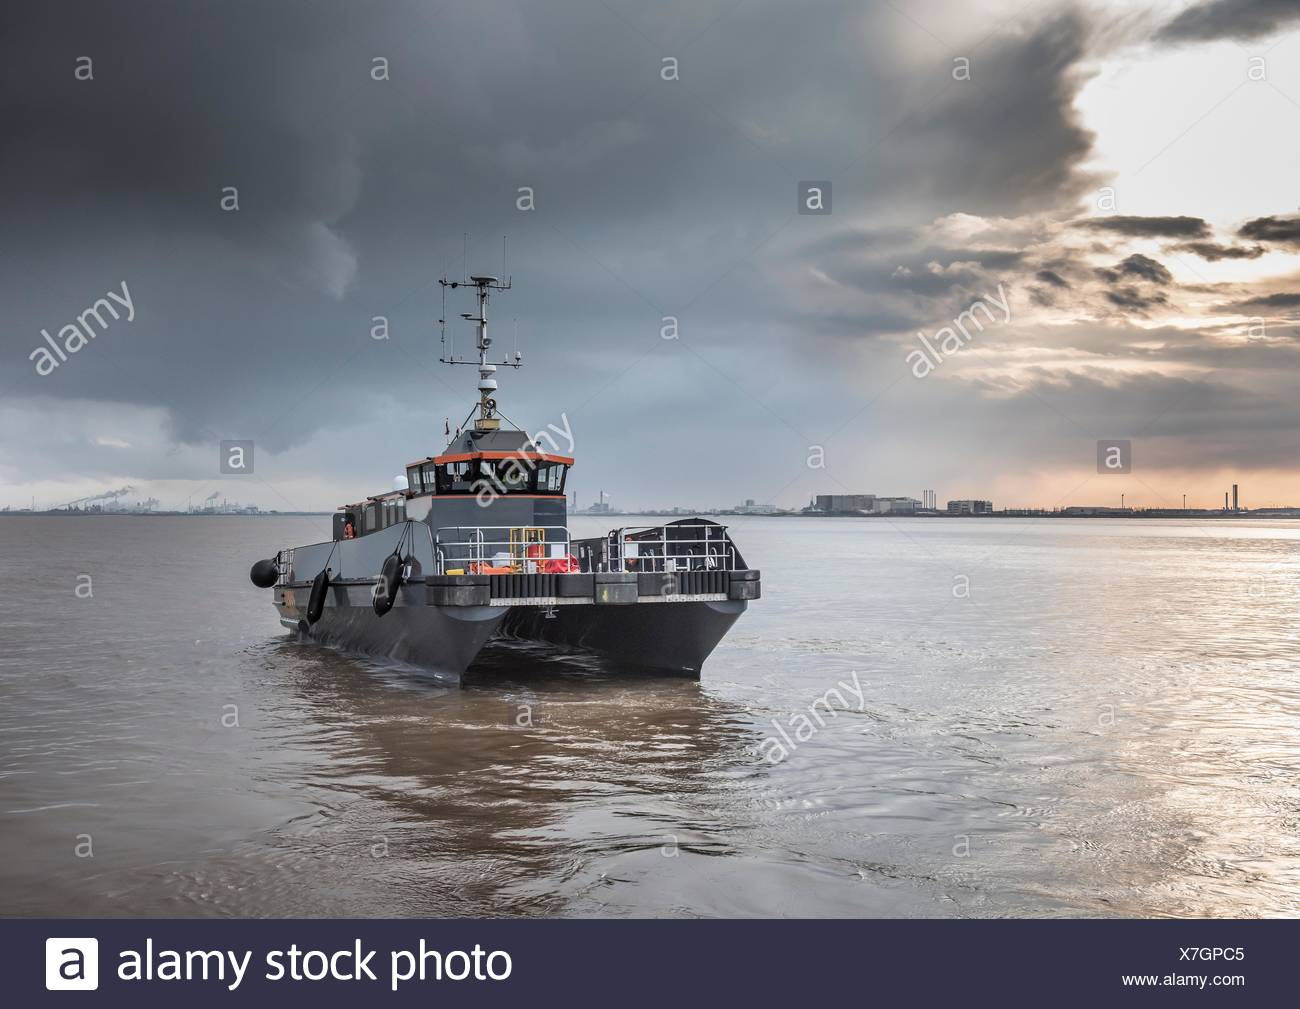 Offshore wind farm service tender boat - Stock Image